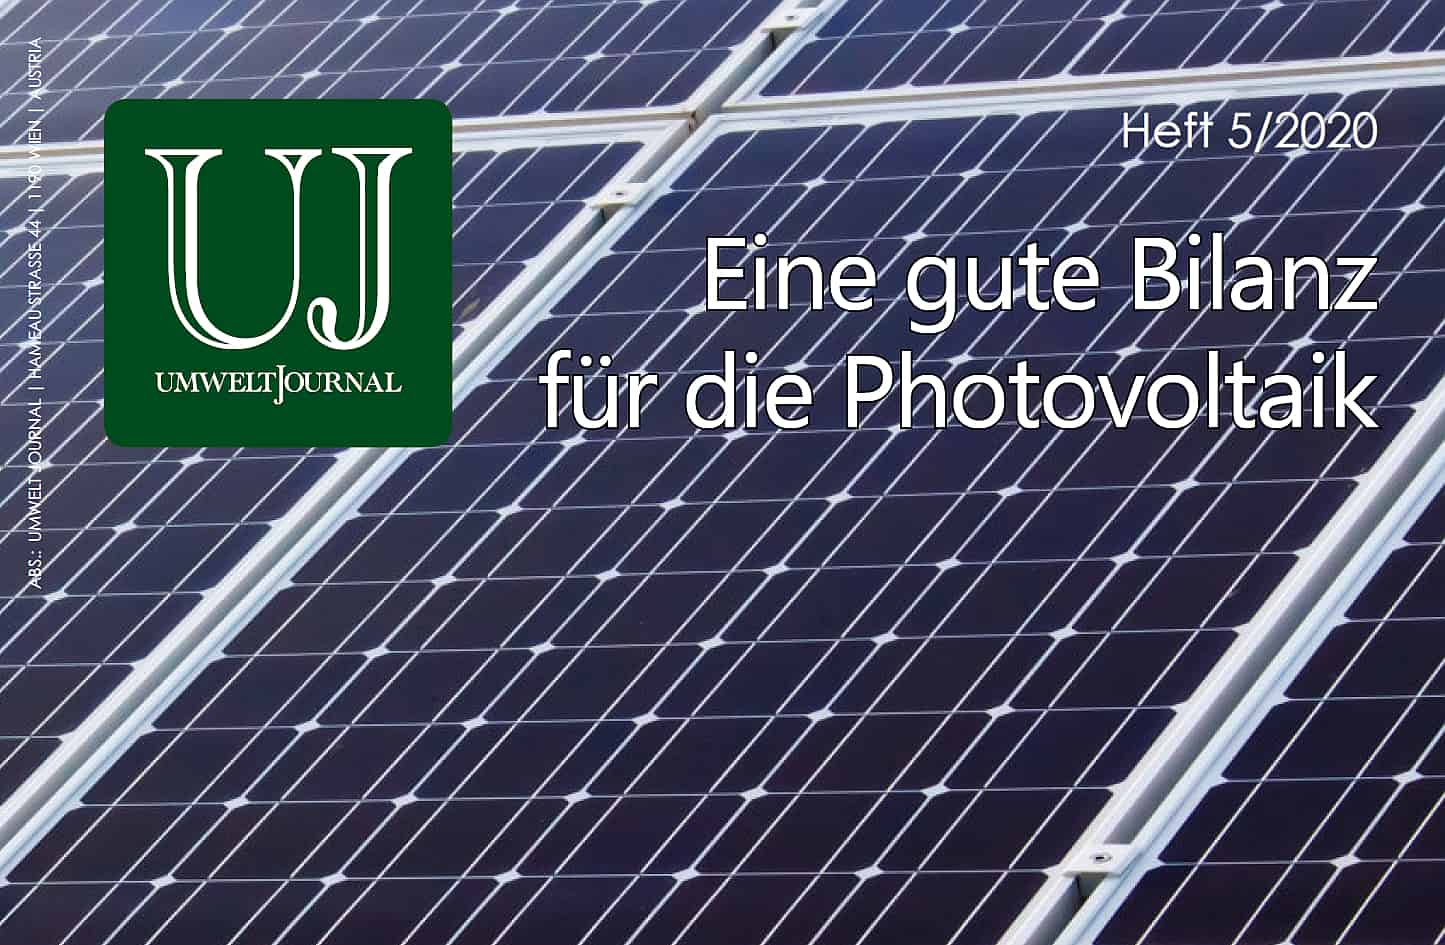 Foto: UMWELT JOURNAL 5-2020, Cover